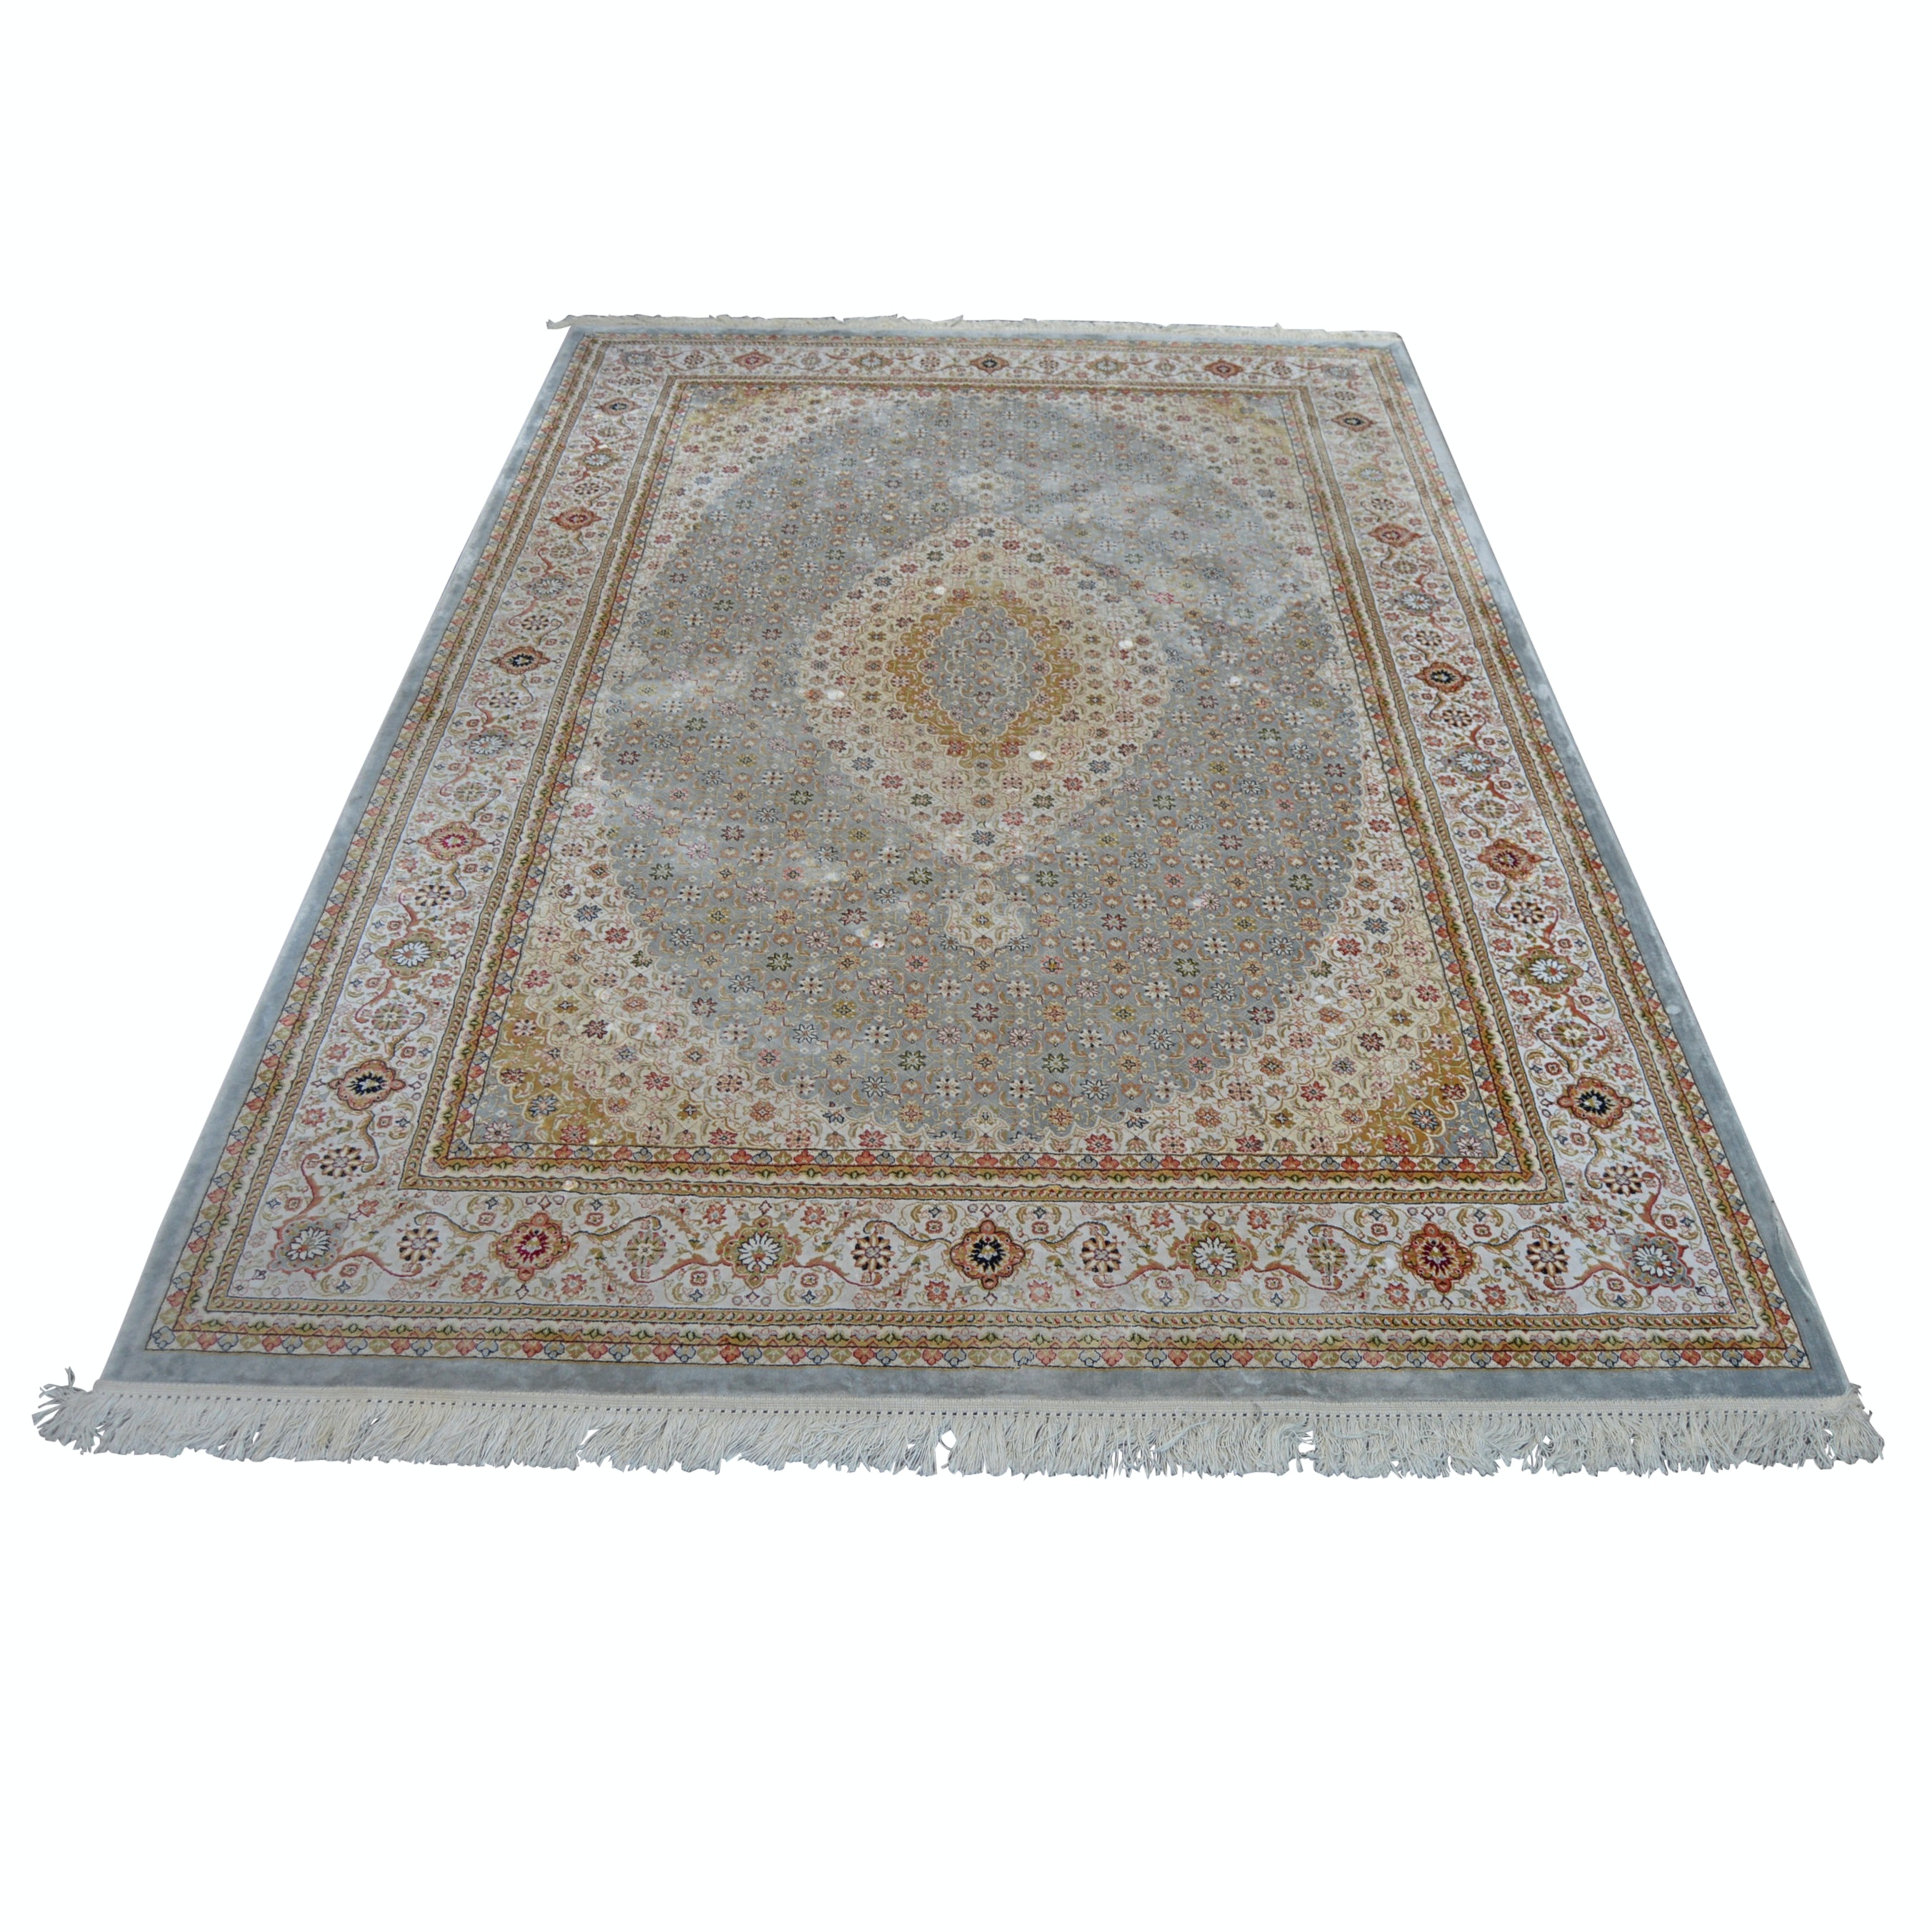 """Machine Woven Marcella's Faux Silk Collection """"Sherzad"""" Area Rug"""